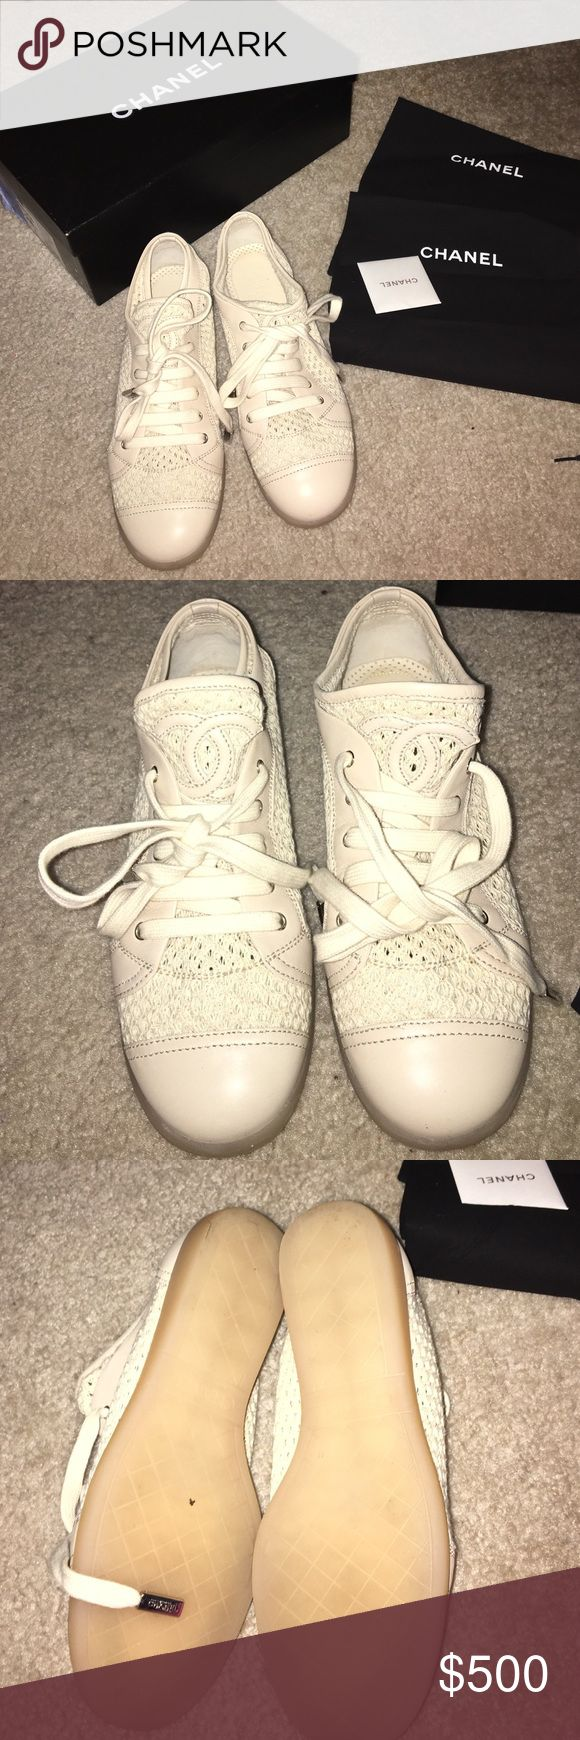 Chanel sneaker Beautiful new Chanel sneaker bought at saks fifth ave size 37  authentic  trade  make me an offer CHANEL Shoes Sneakers